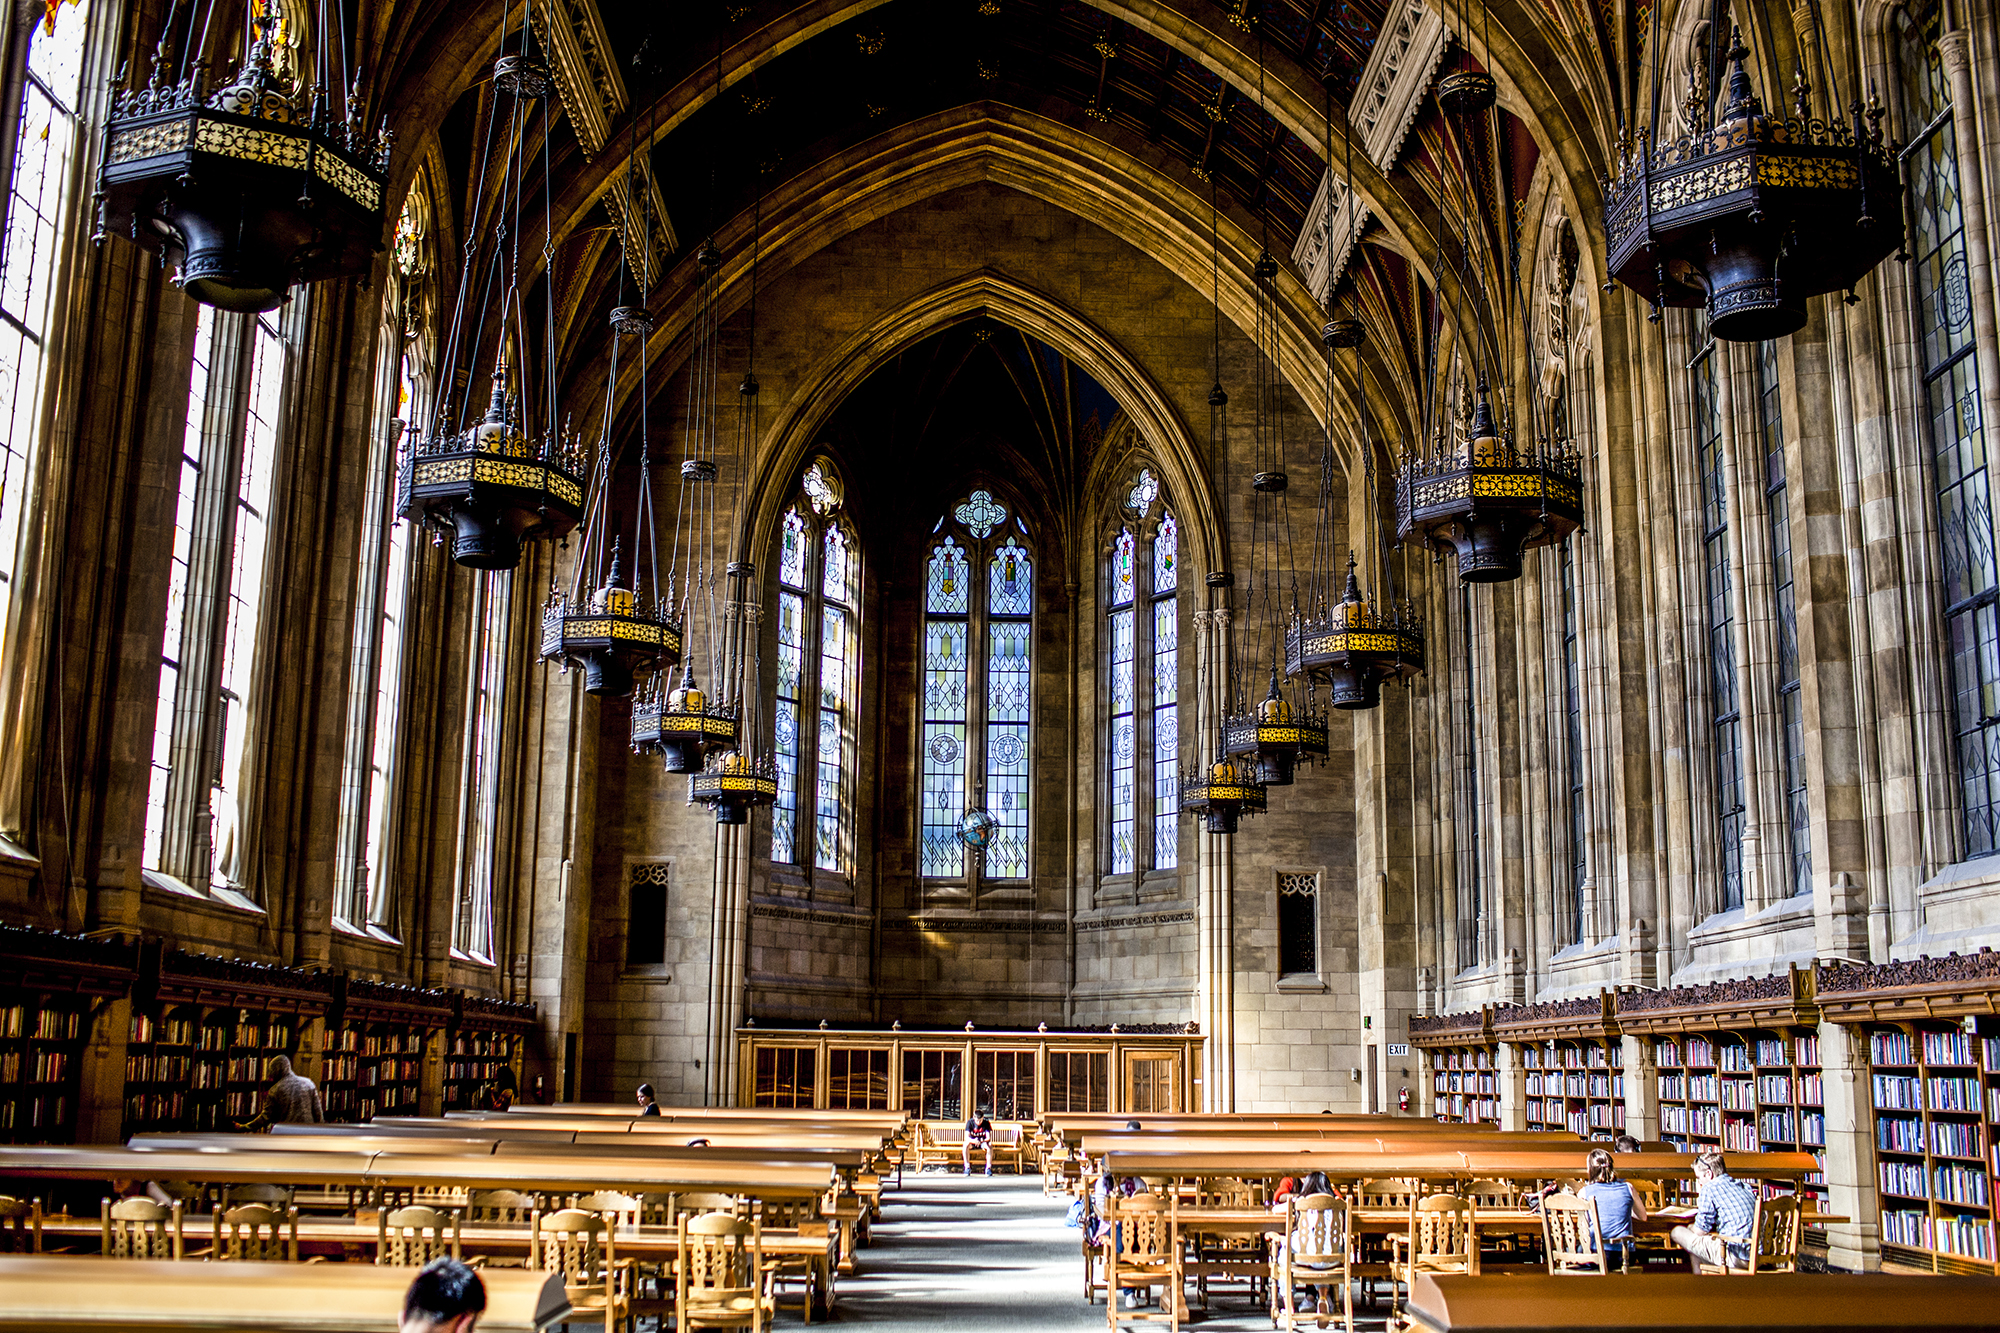 Suzzallo Library, This Gothic-style library is an architectural marvel. It may not truly be Hogwarts, but it sure is magical.